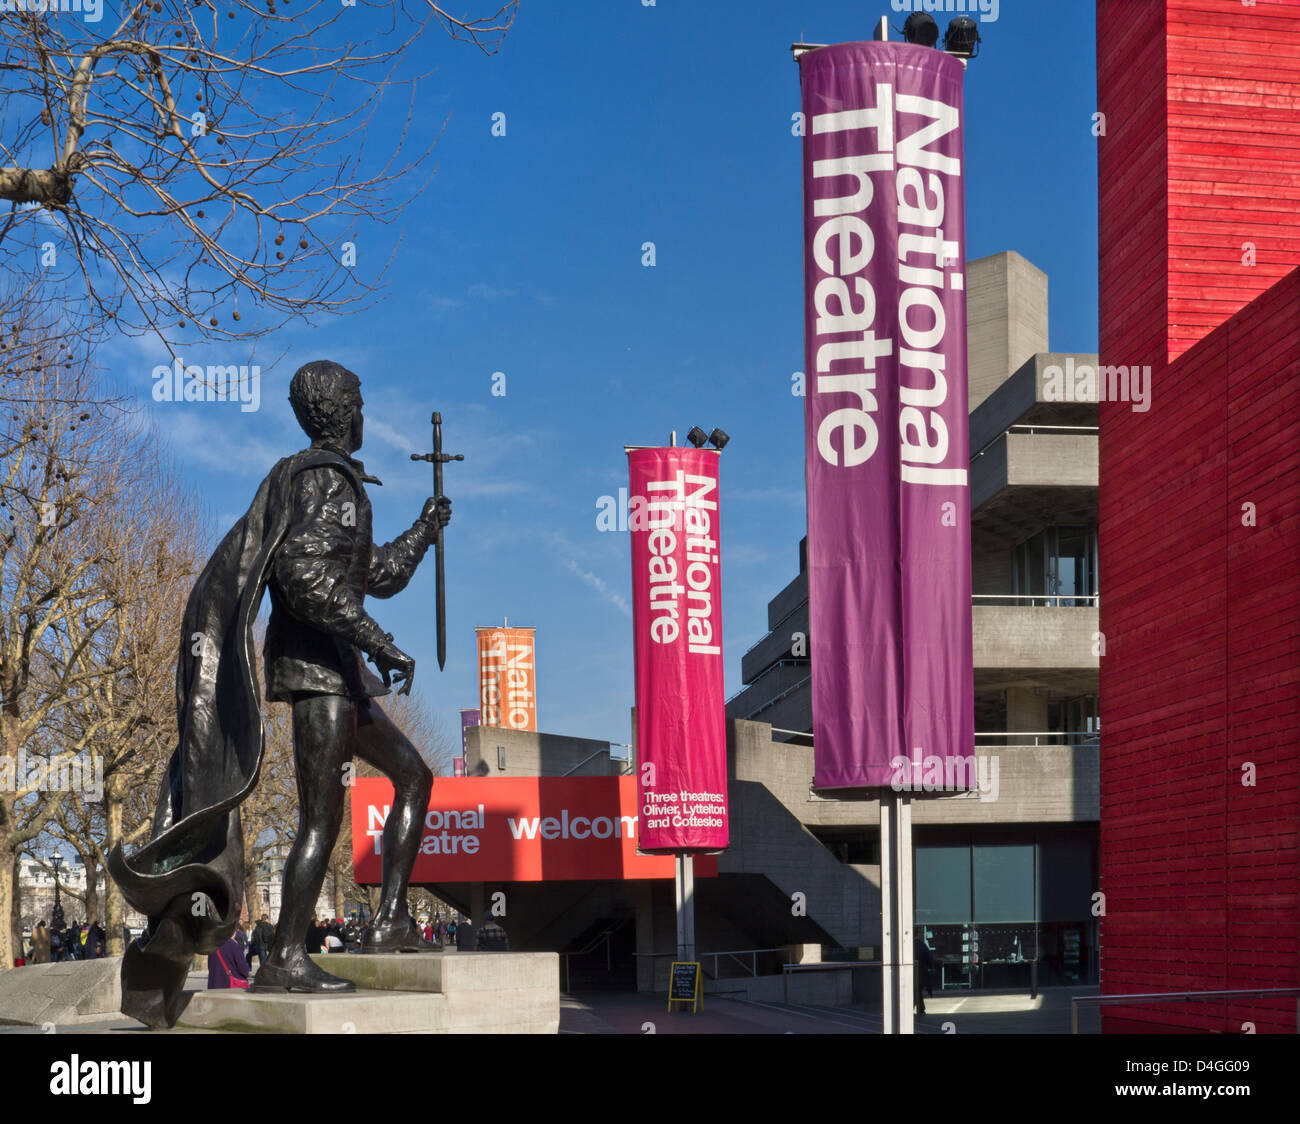 National Theatre and bronze statue of Lord Laurence Olivier in spring South Bank River Thames London UK - Stock Image